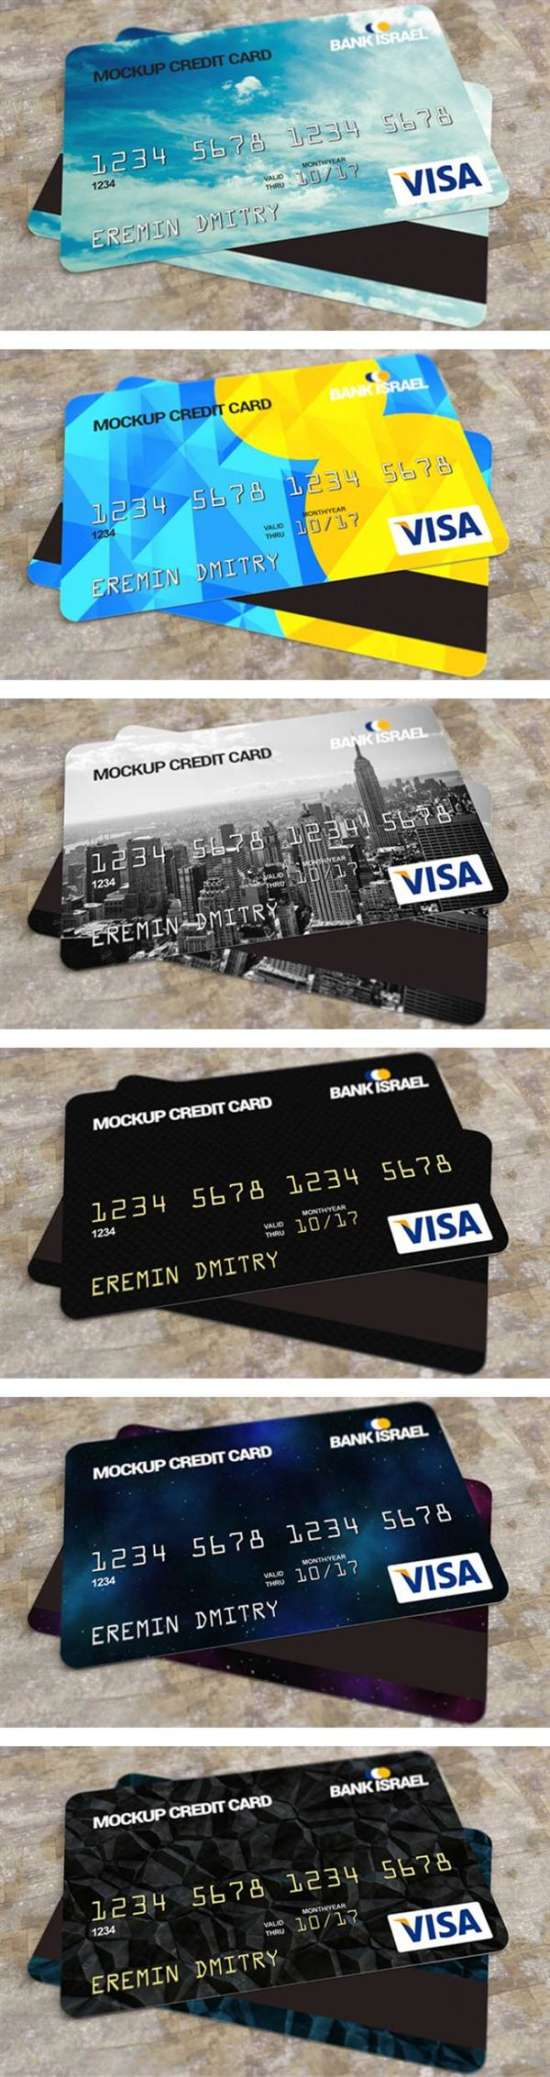 credit_card_mockup_free_psd_screenshot